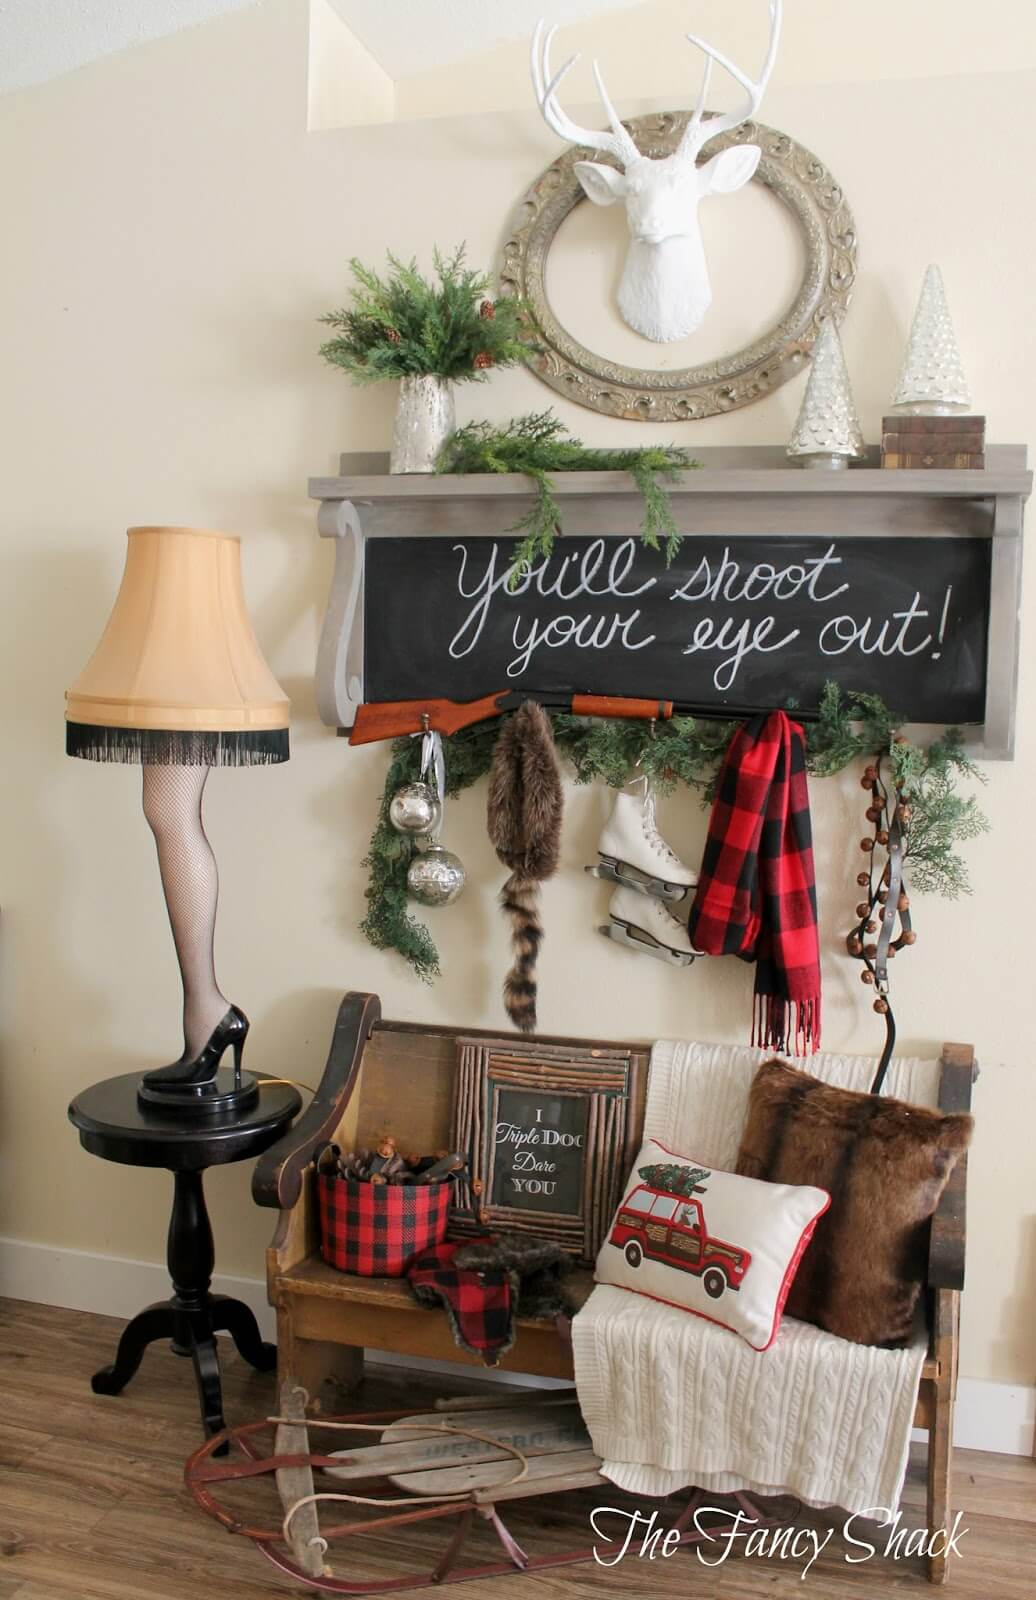 3 eclectic farmhouse style entryway with chalkboard